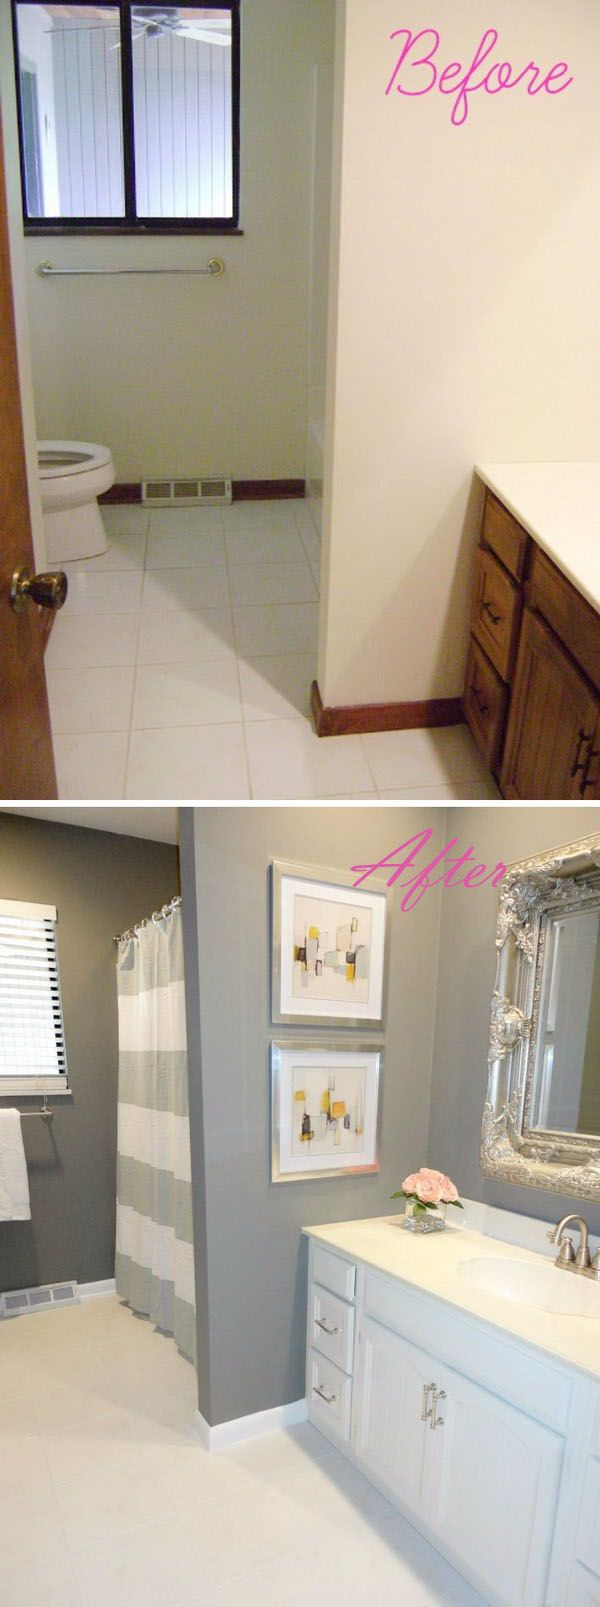 Small Bathroom Makeovers Diy best 25+ bathroom makeovers ideas on pinterest | bathroom ideas